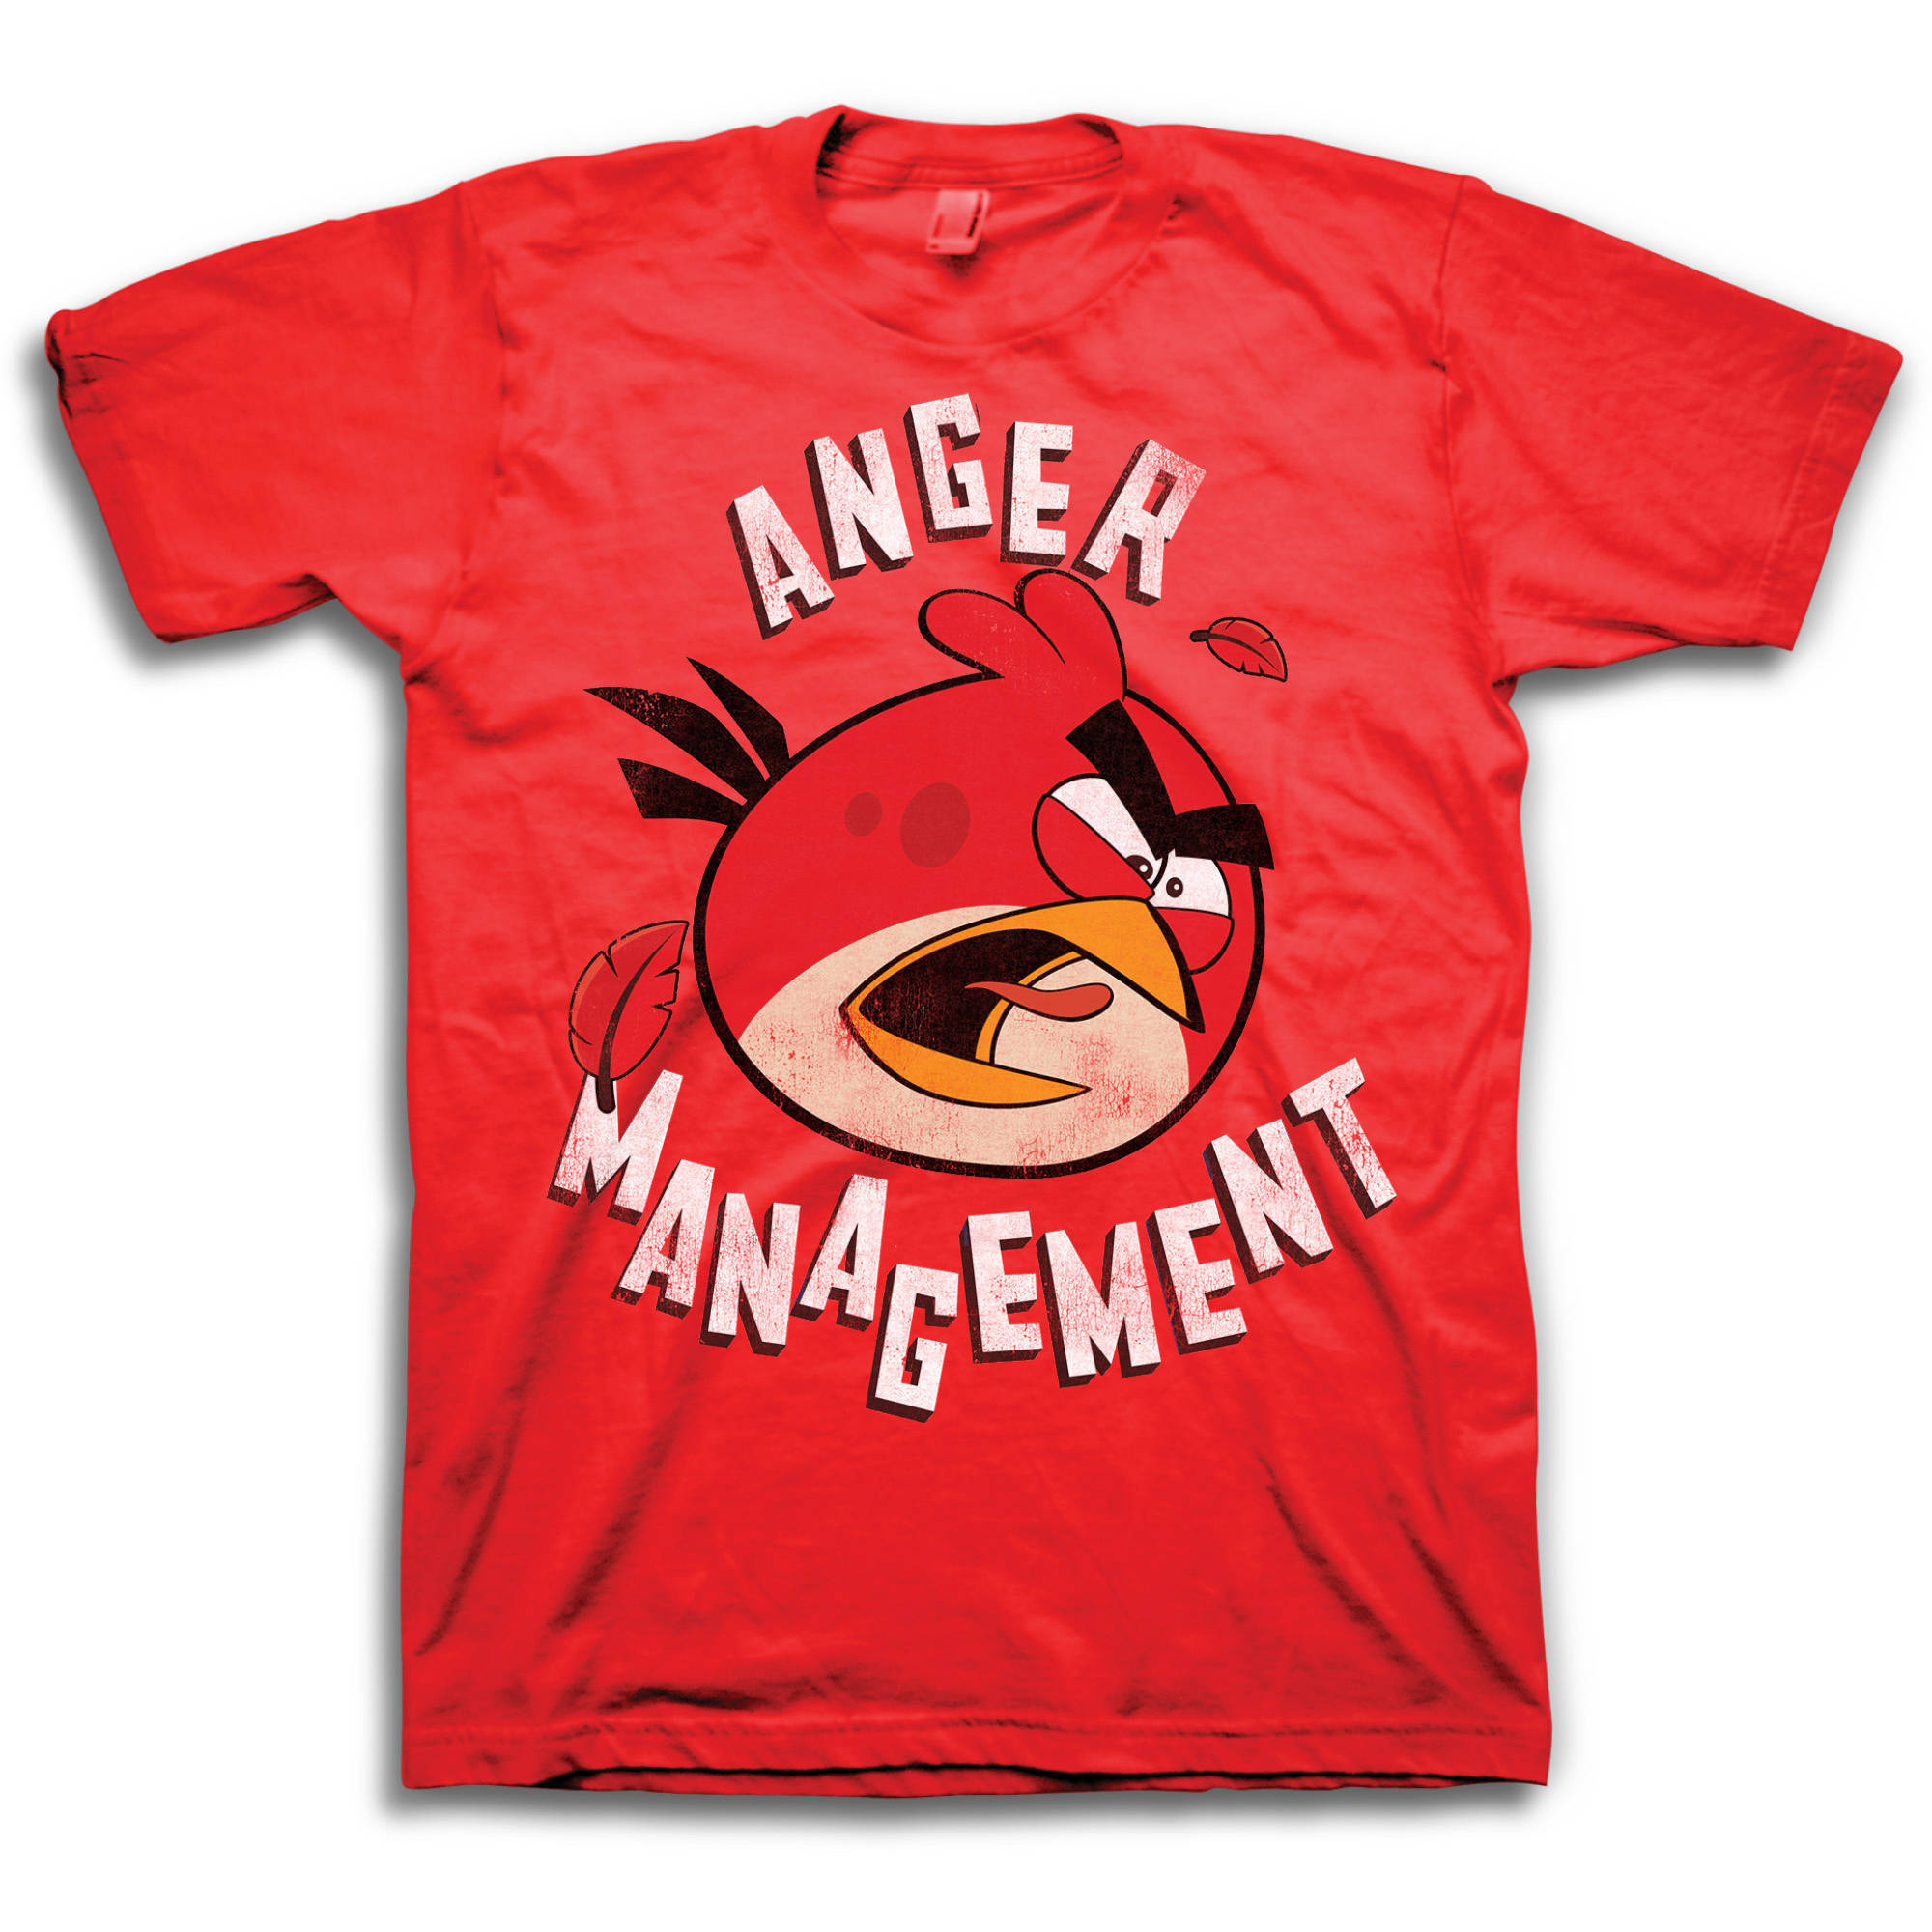 Angry Birds Anger Management Men's Short Sleeve Graphic Tee T-Shirt